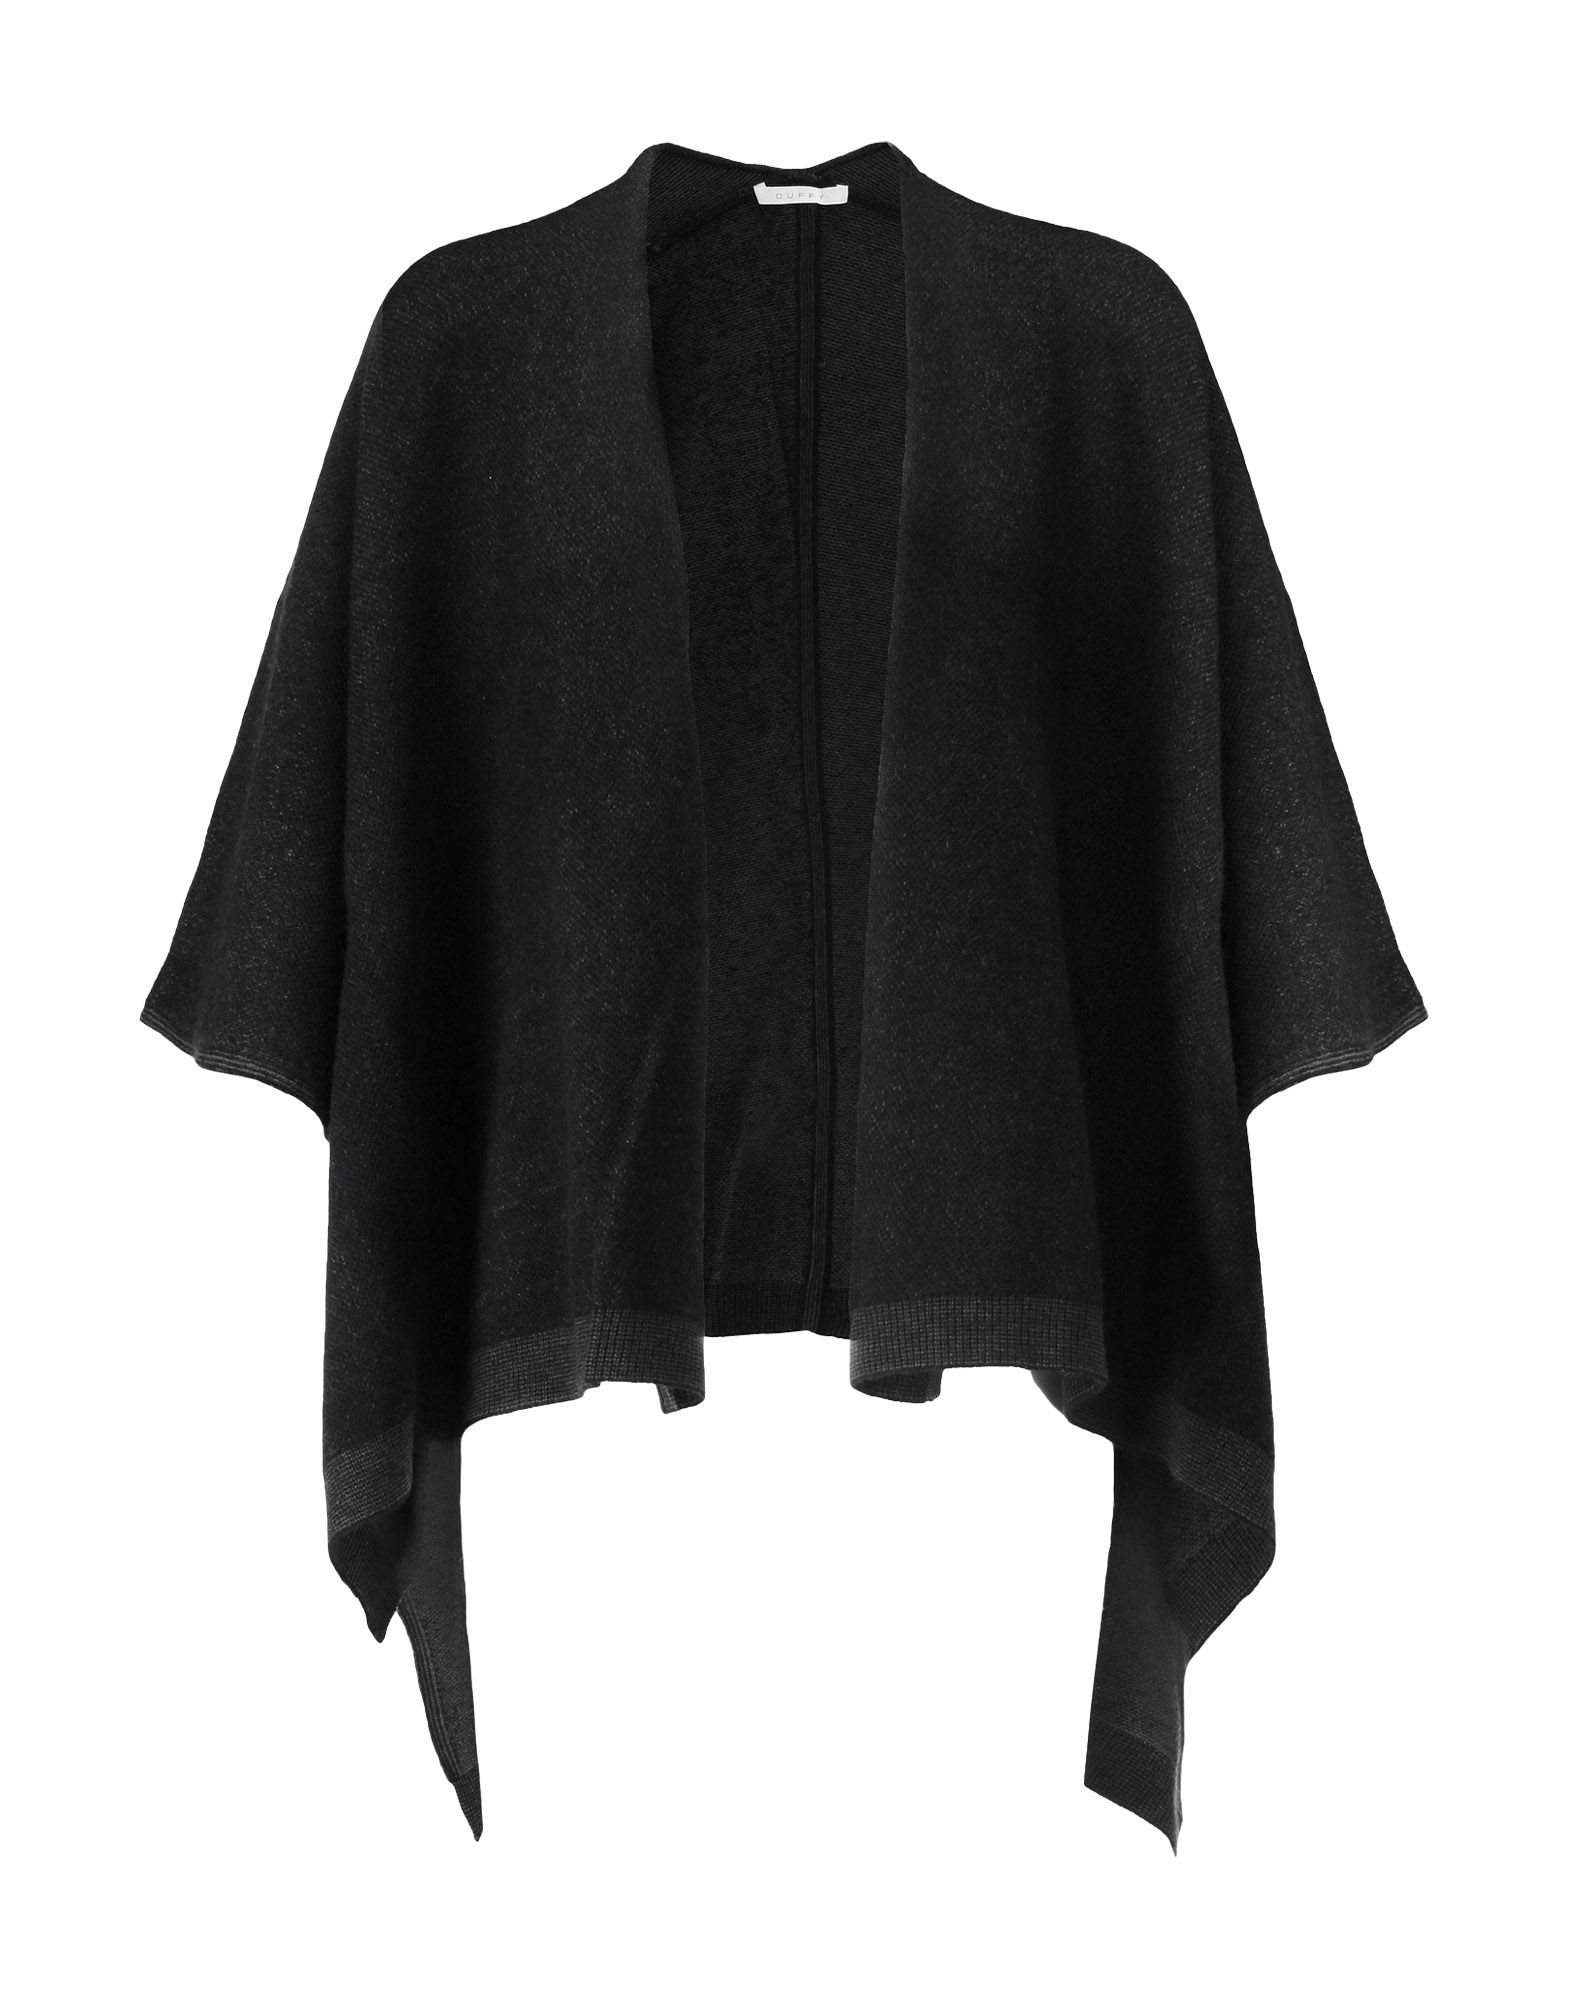 DUFFY Cardigan in Black